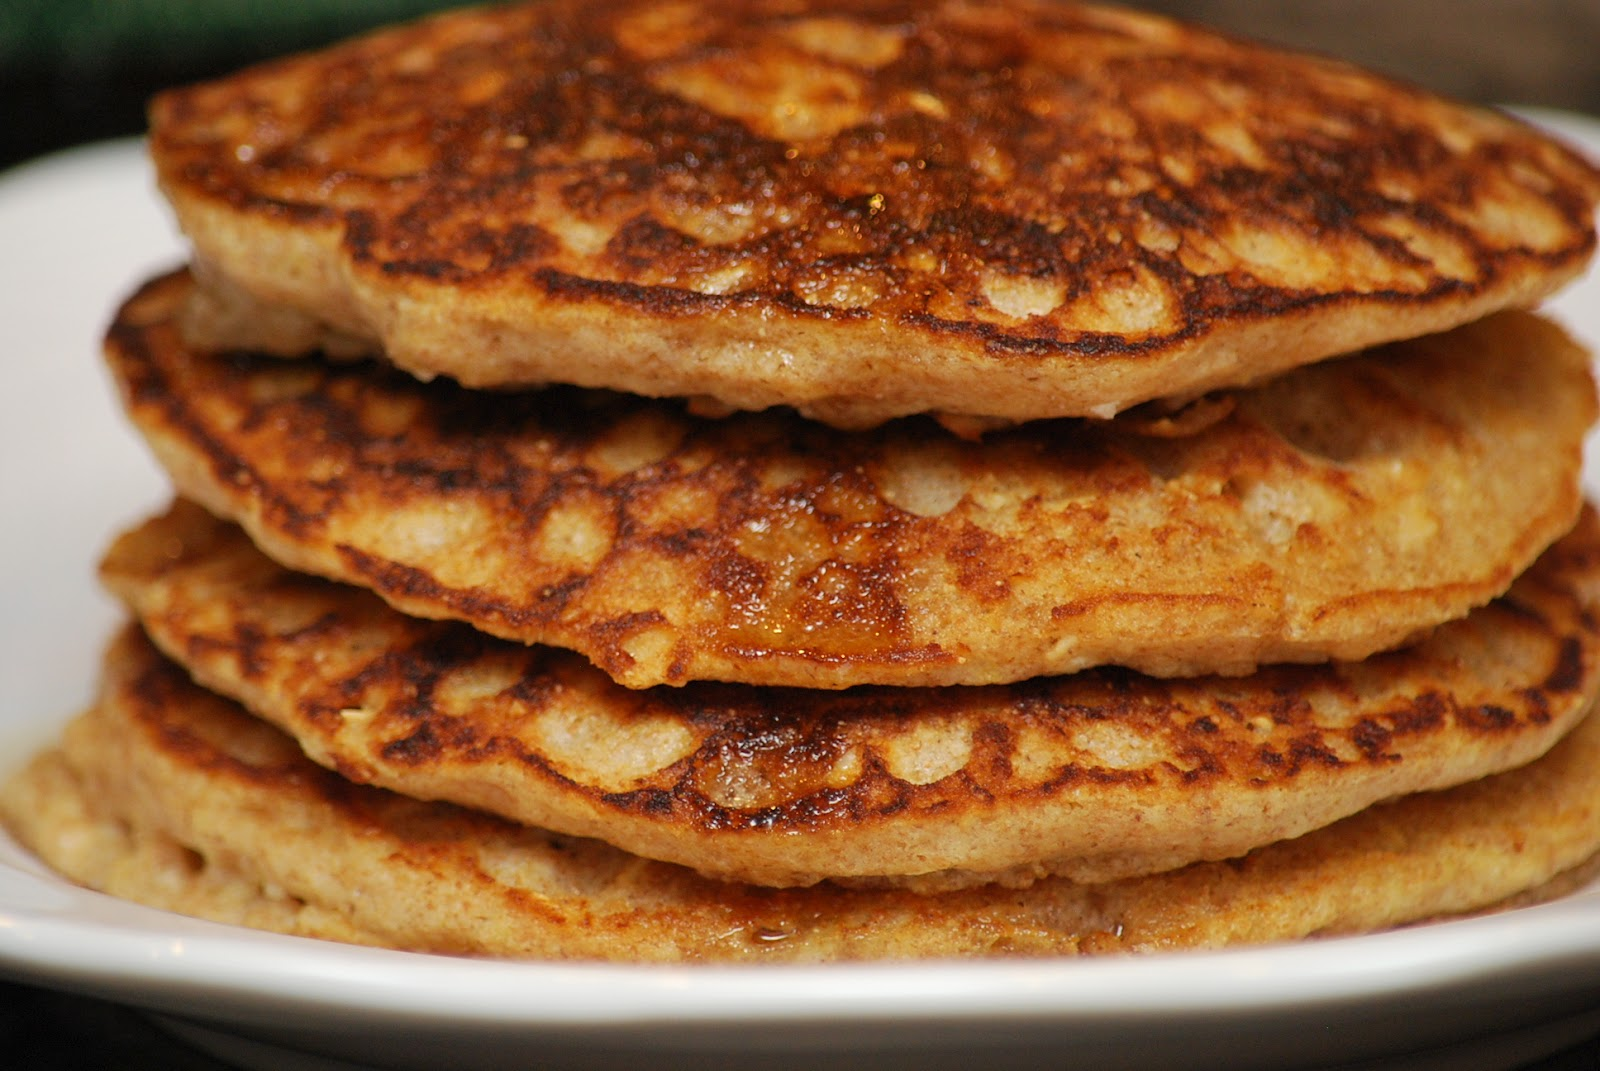 My story in recipes: Whole Grain Pancakes